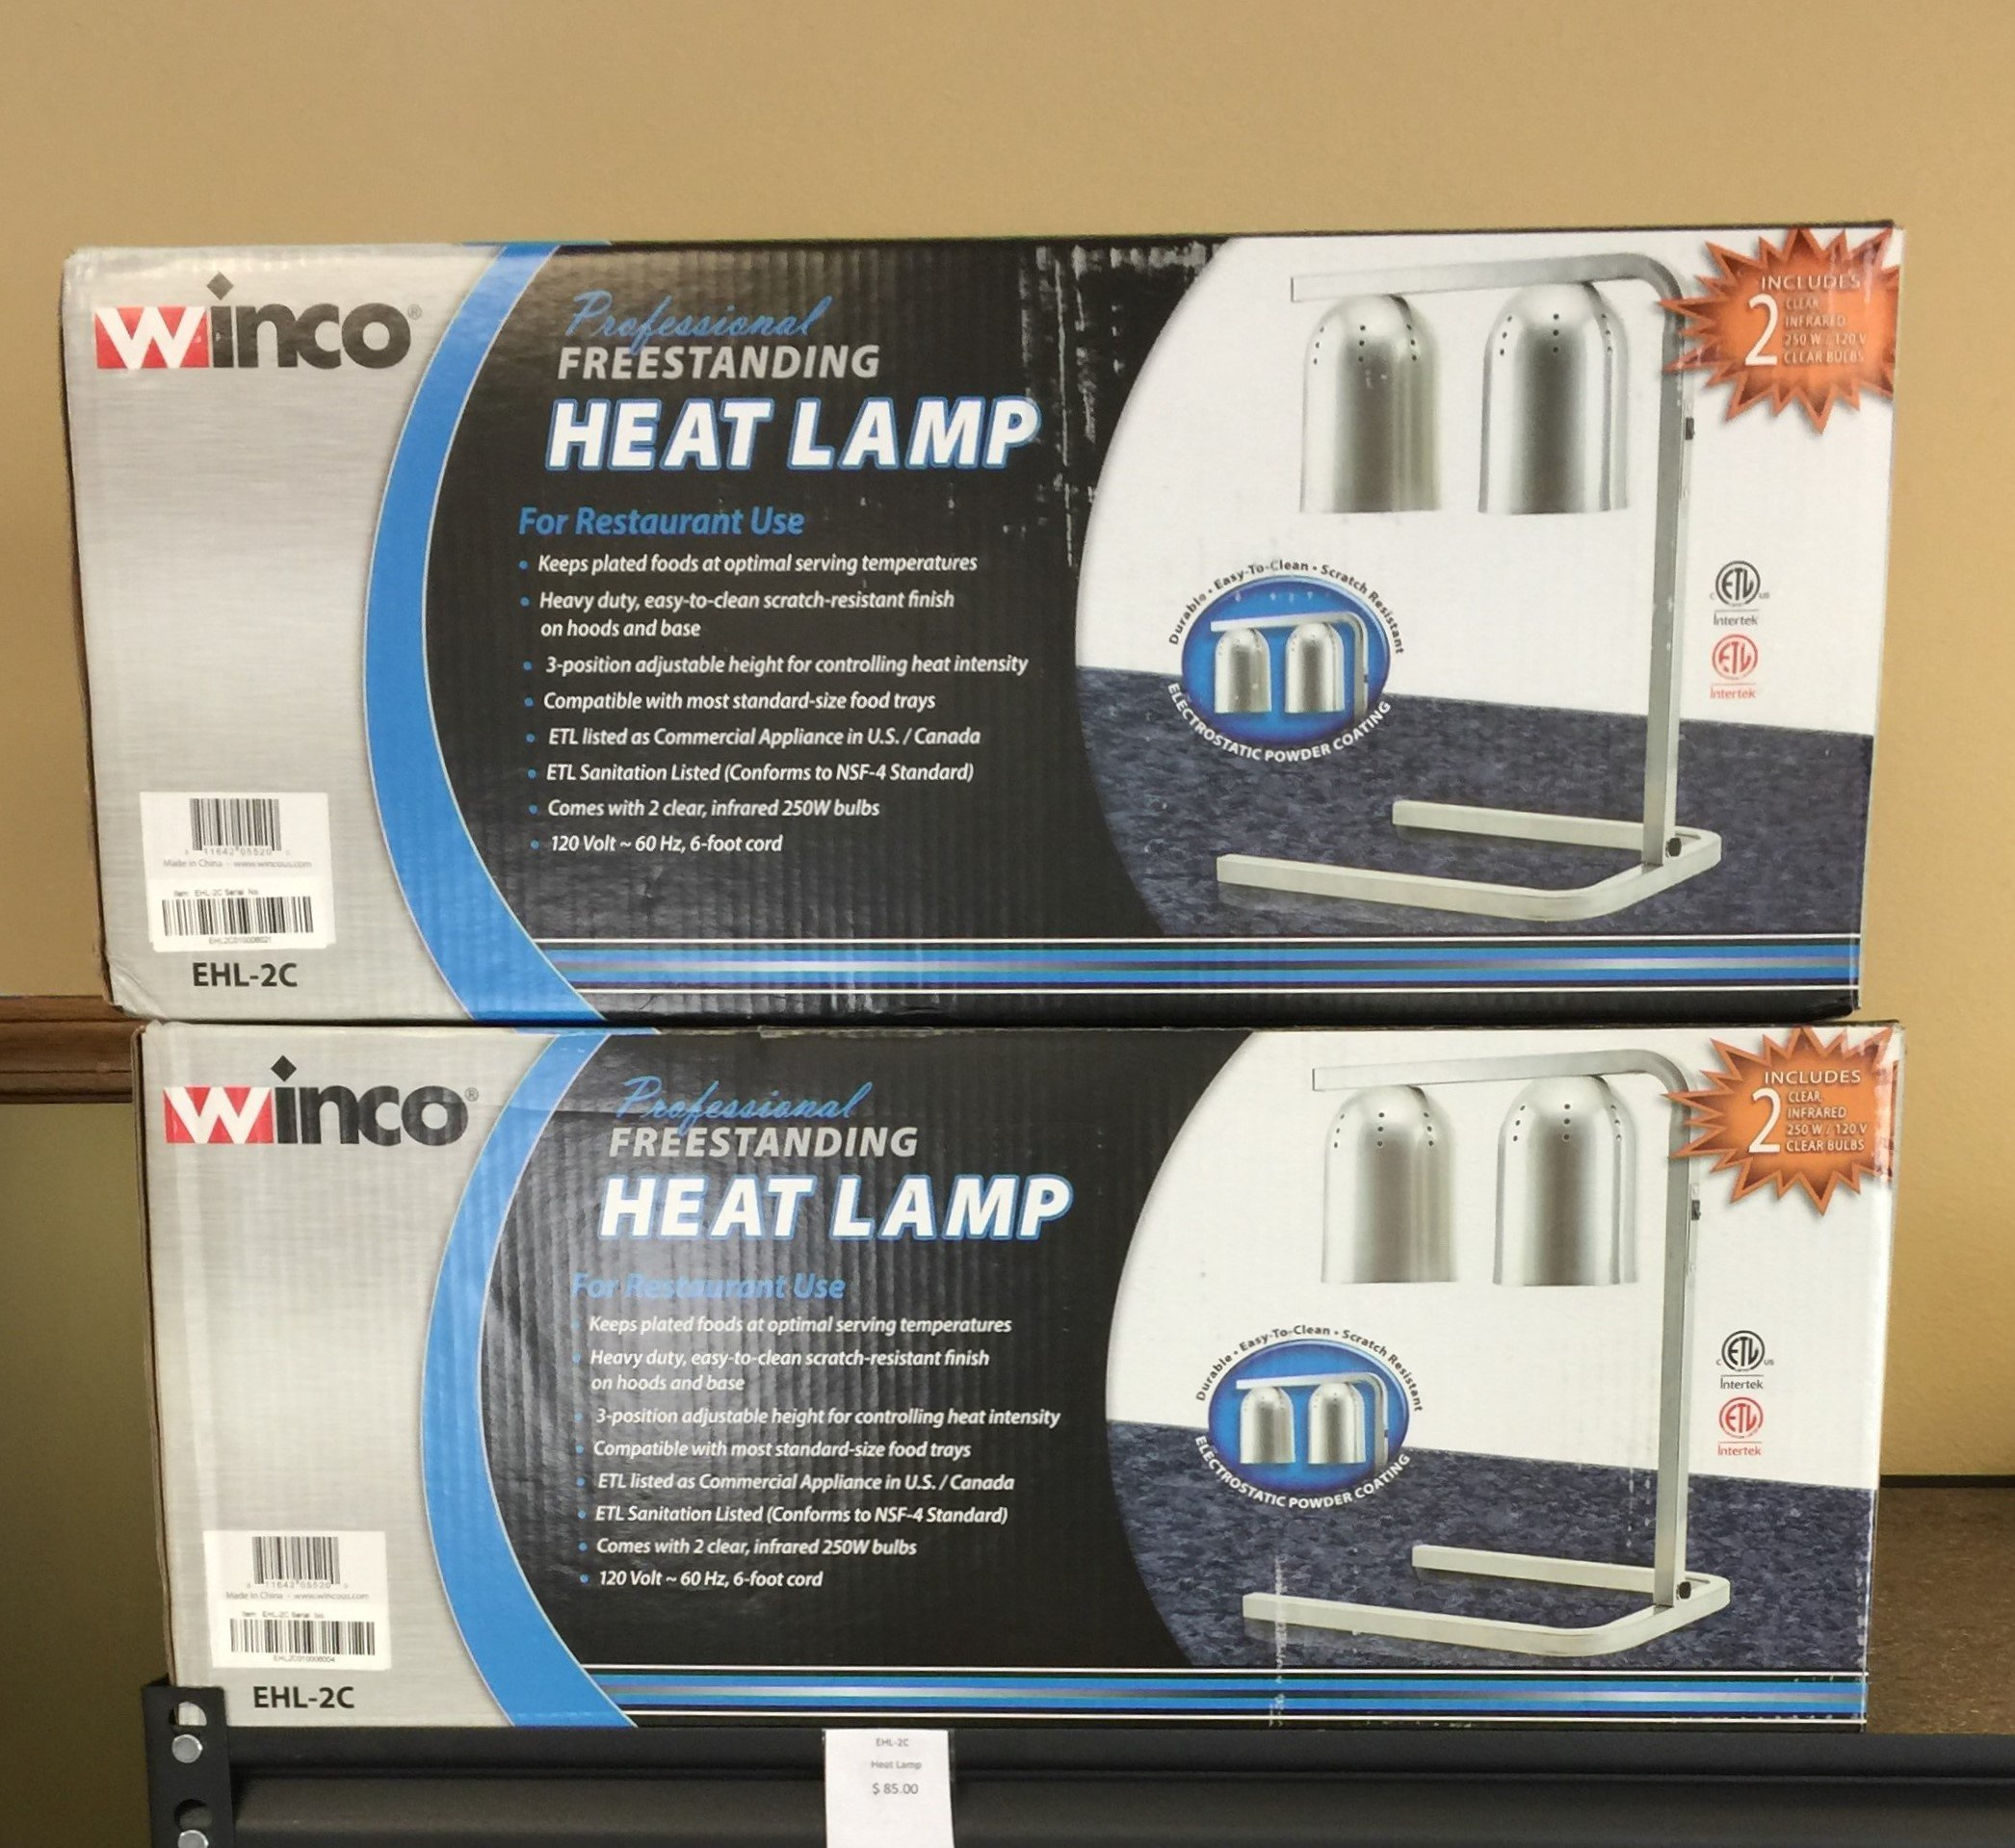 New Winco Heat Lamps $ 85.00